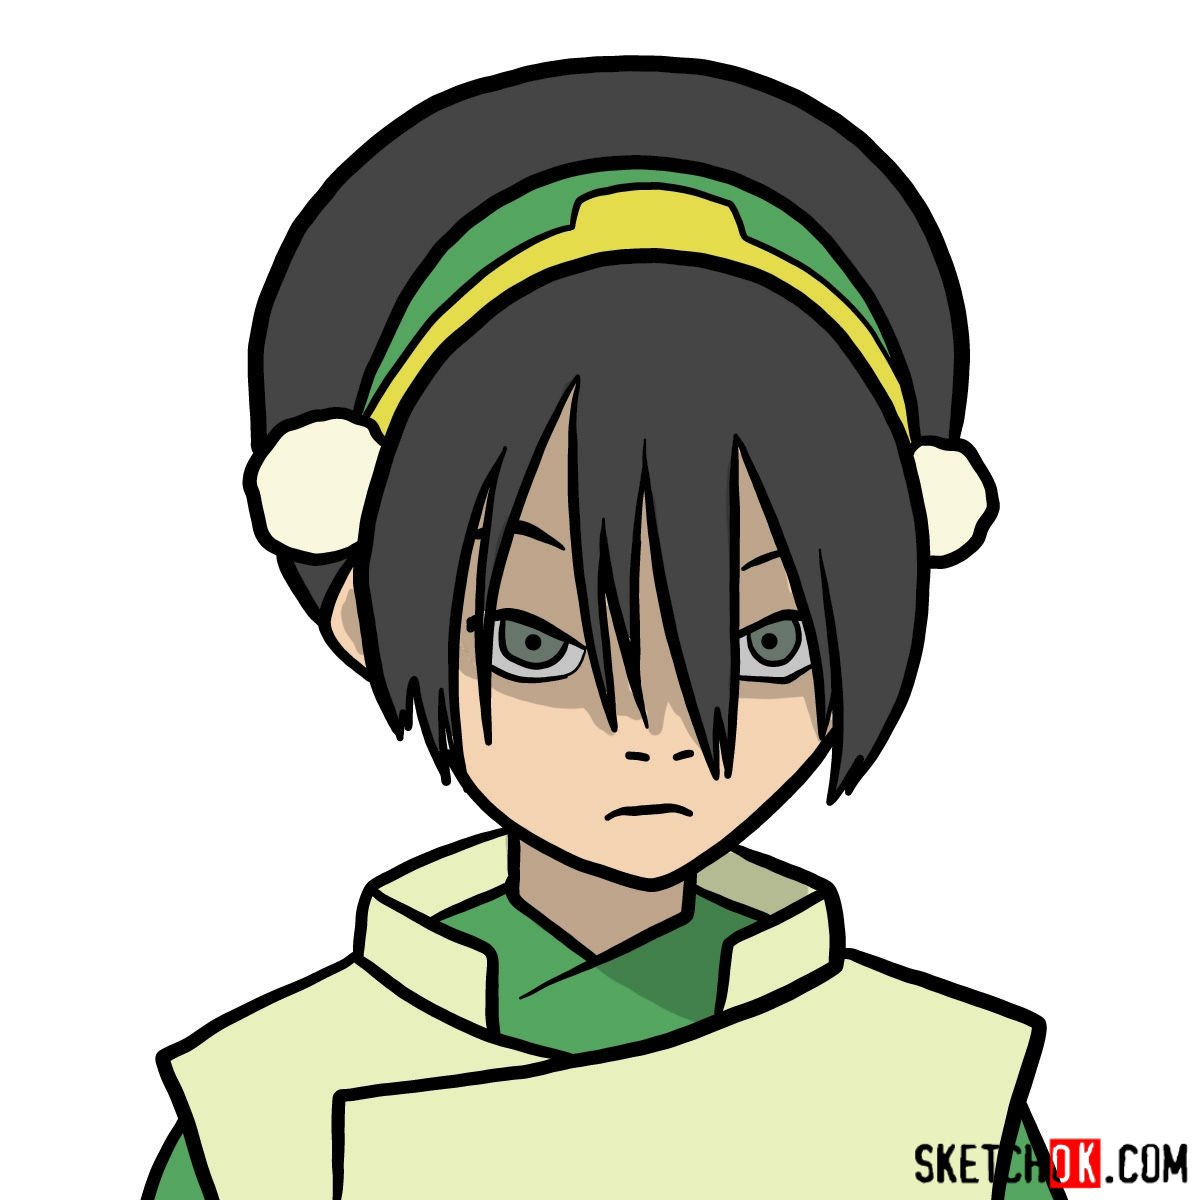 How to draw Toph Beifong's face - coloring